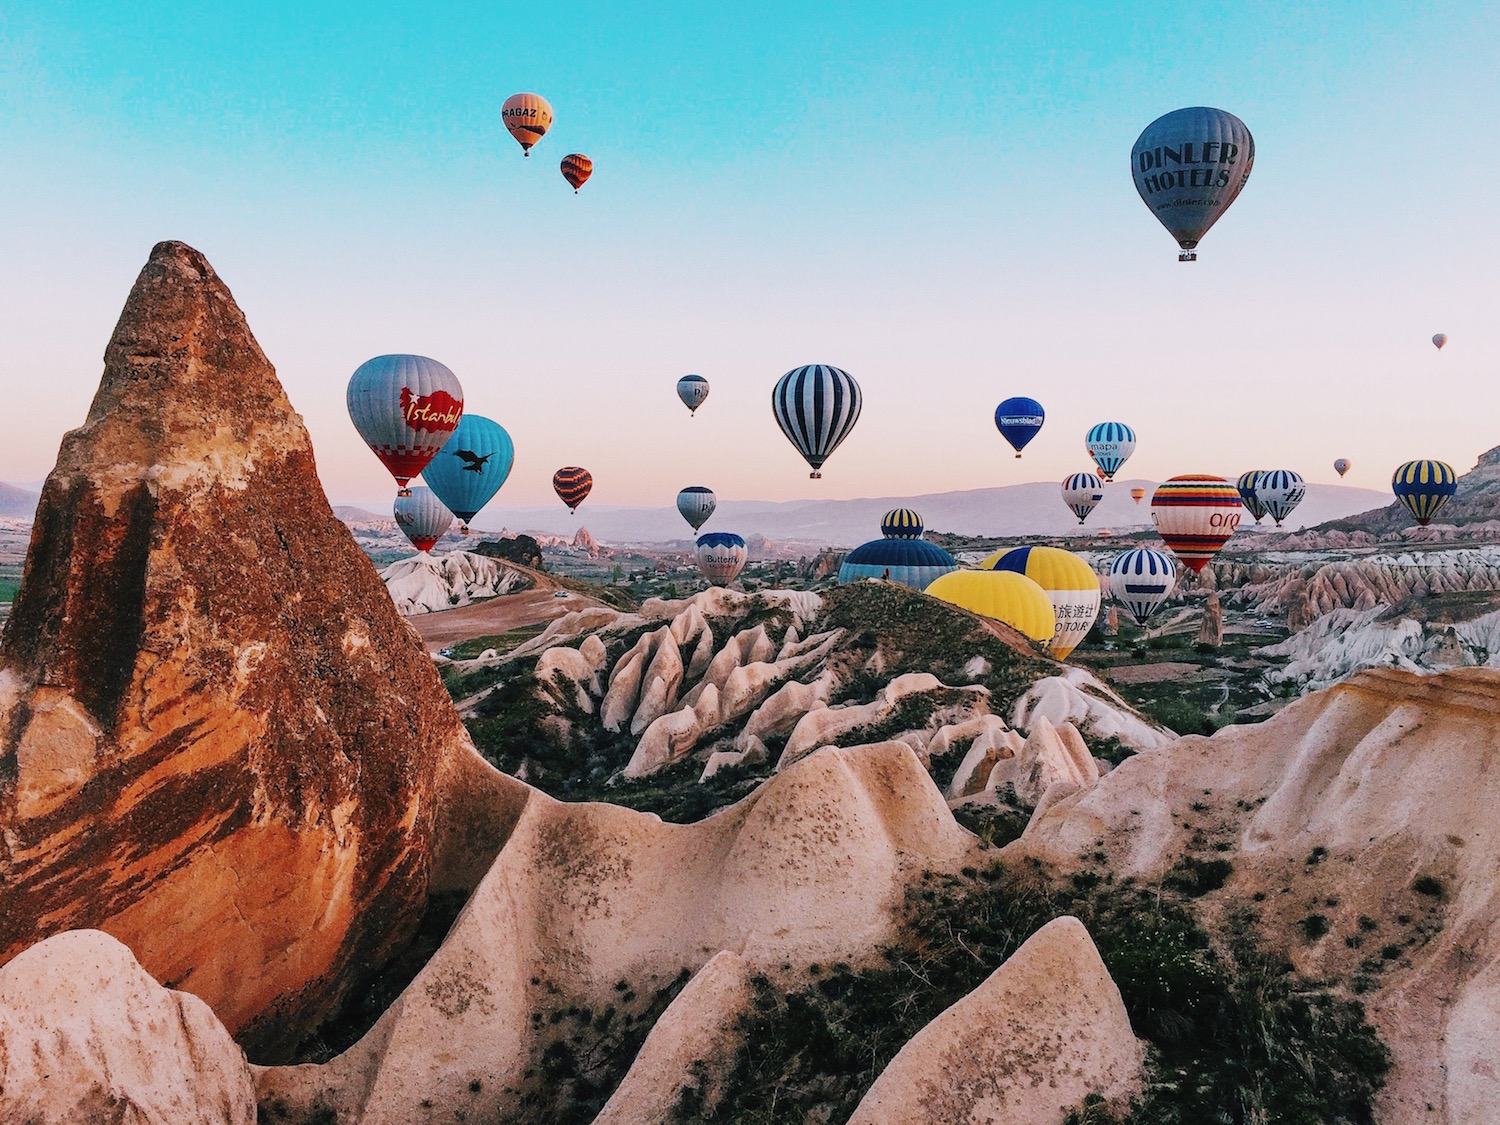 Royal Balloon Cappadocia and Central Turkey, THE BEST PHOTO LOCATIONS IN CAPPADOCIA | black.white.vivid.